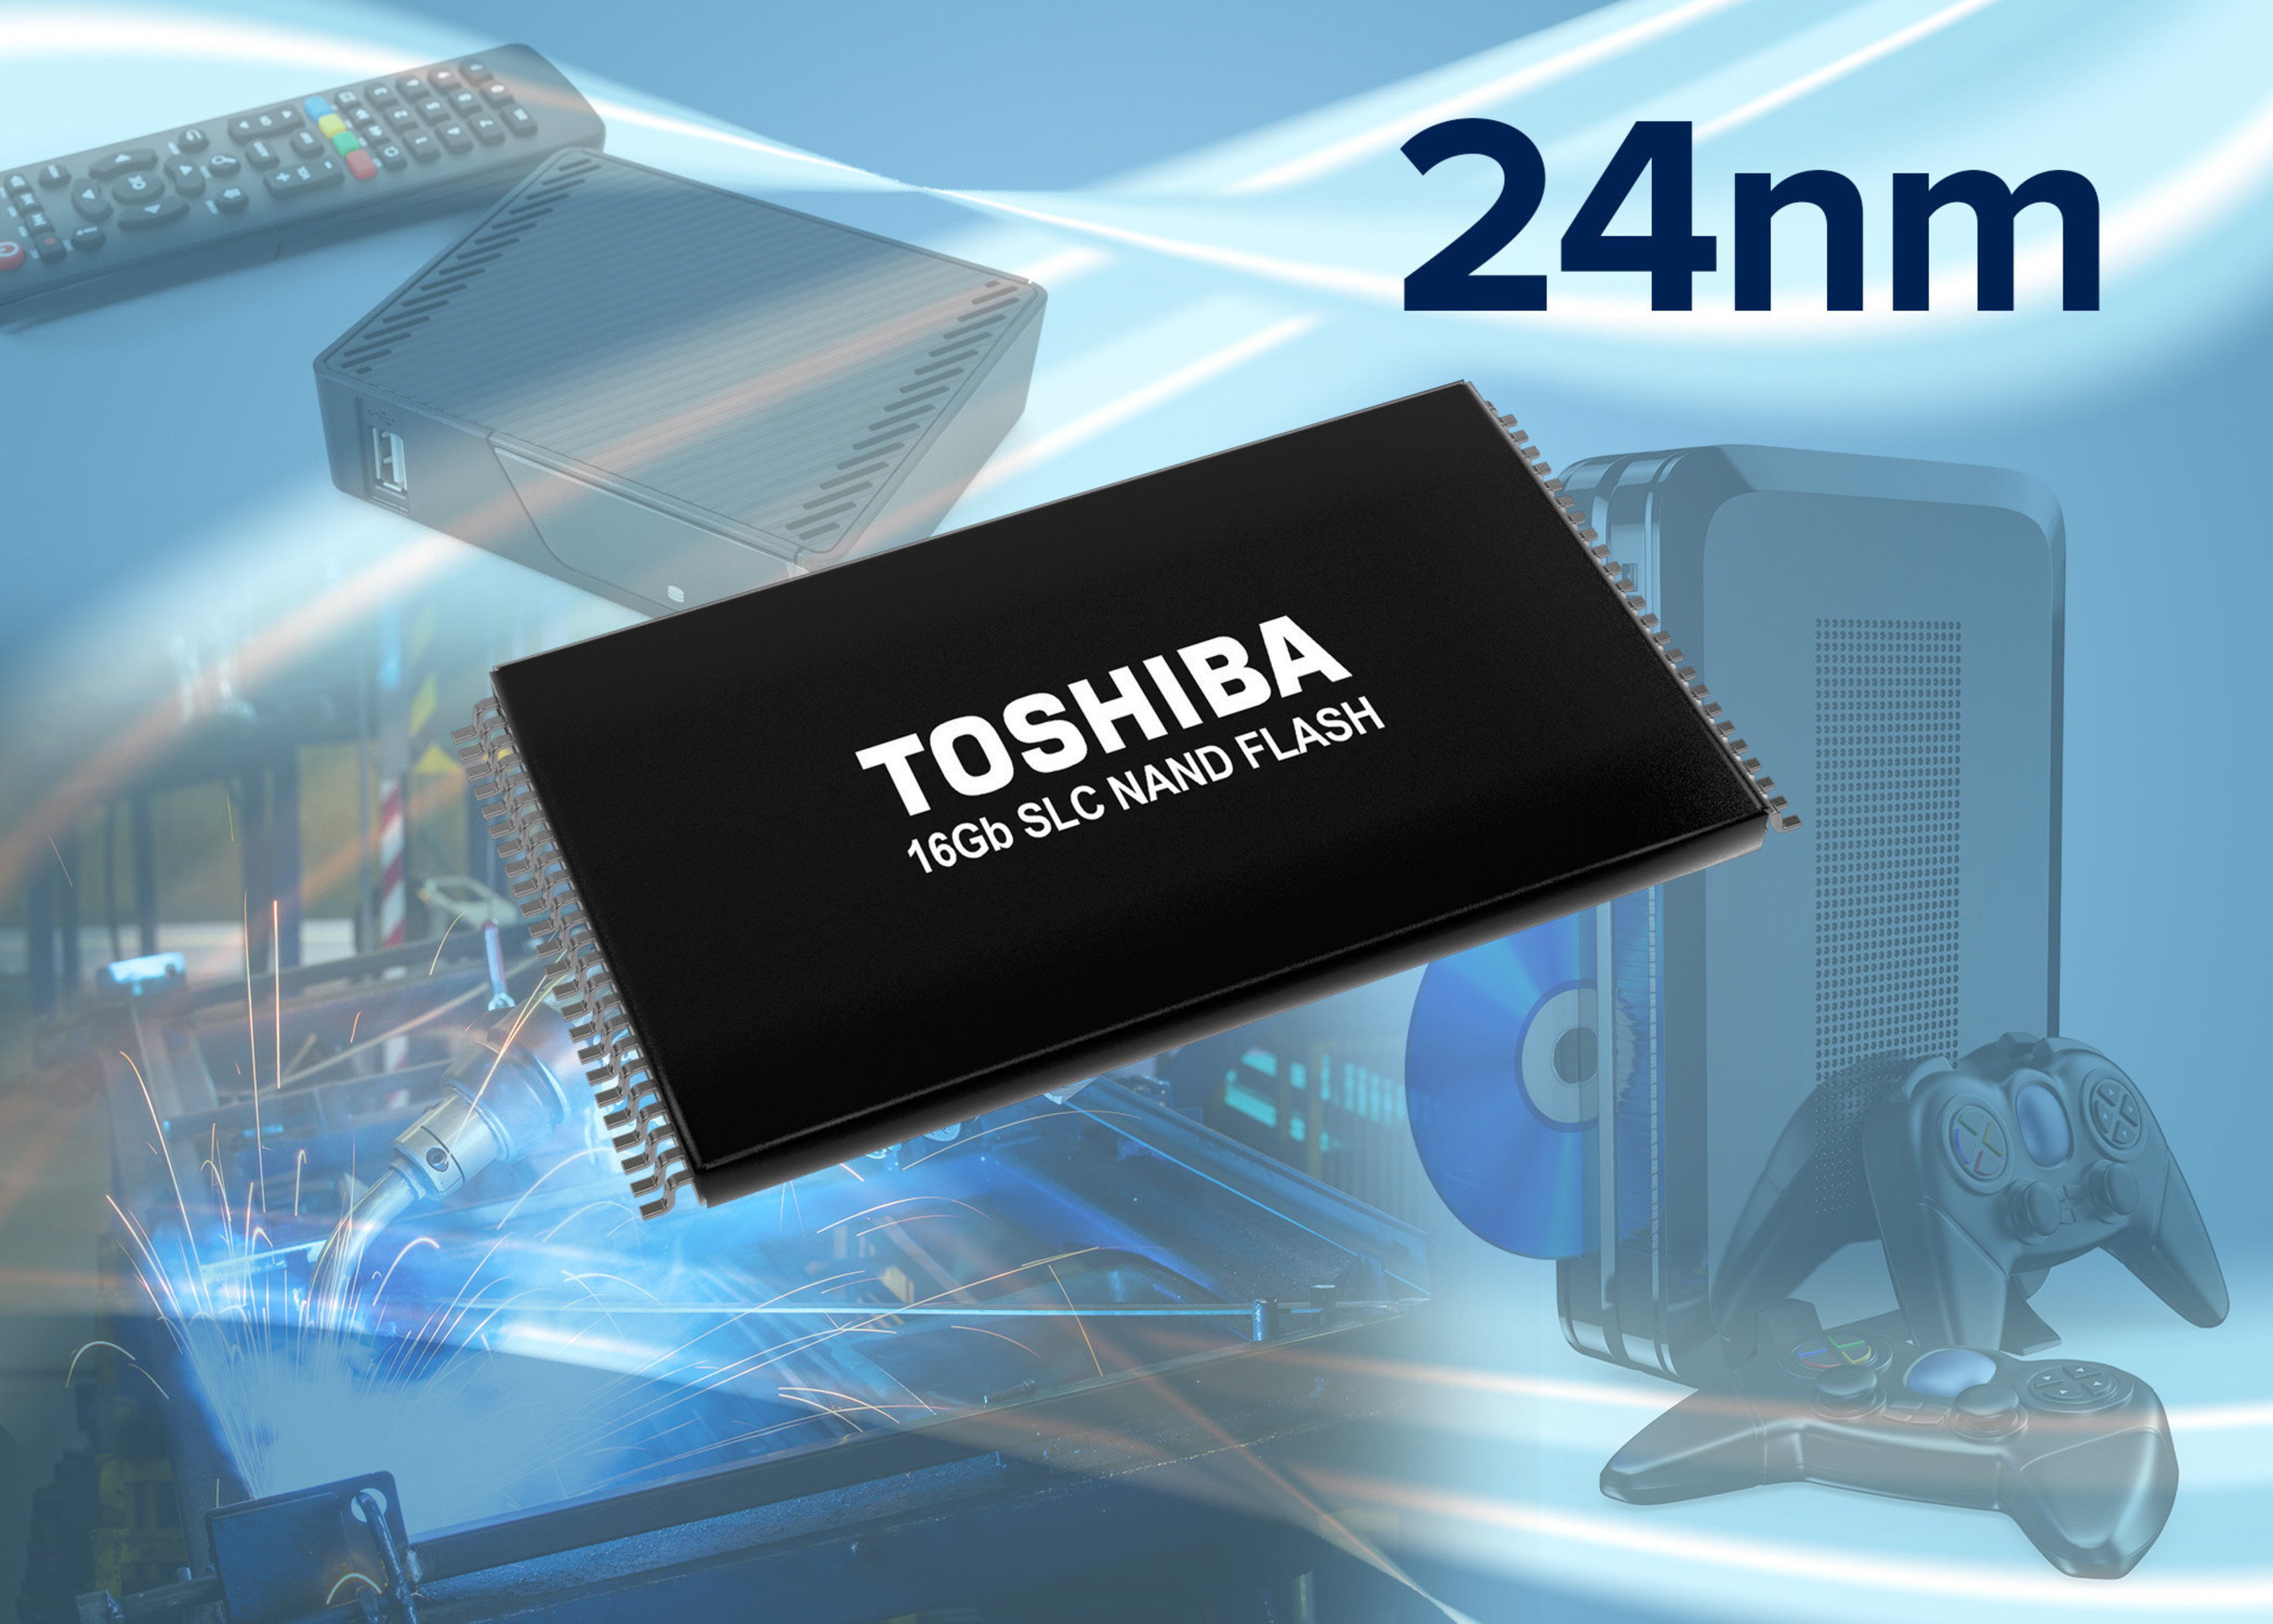 Toshiba Expands 24nm SLC NAND Flash Lineup to Address Industrial Applications